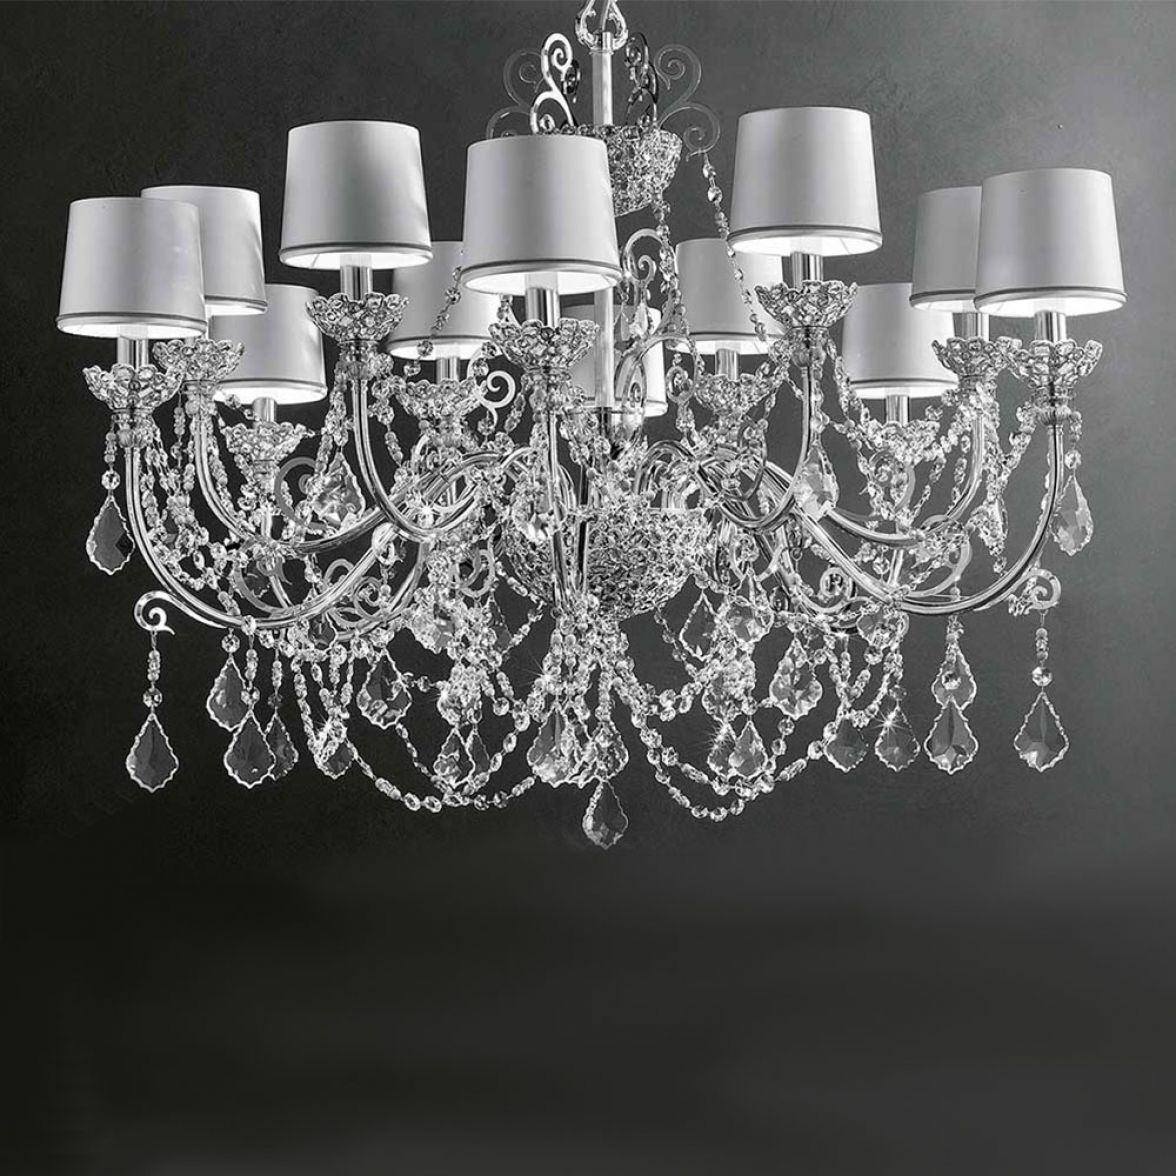 Silver Imperial chandelier